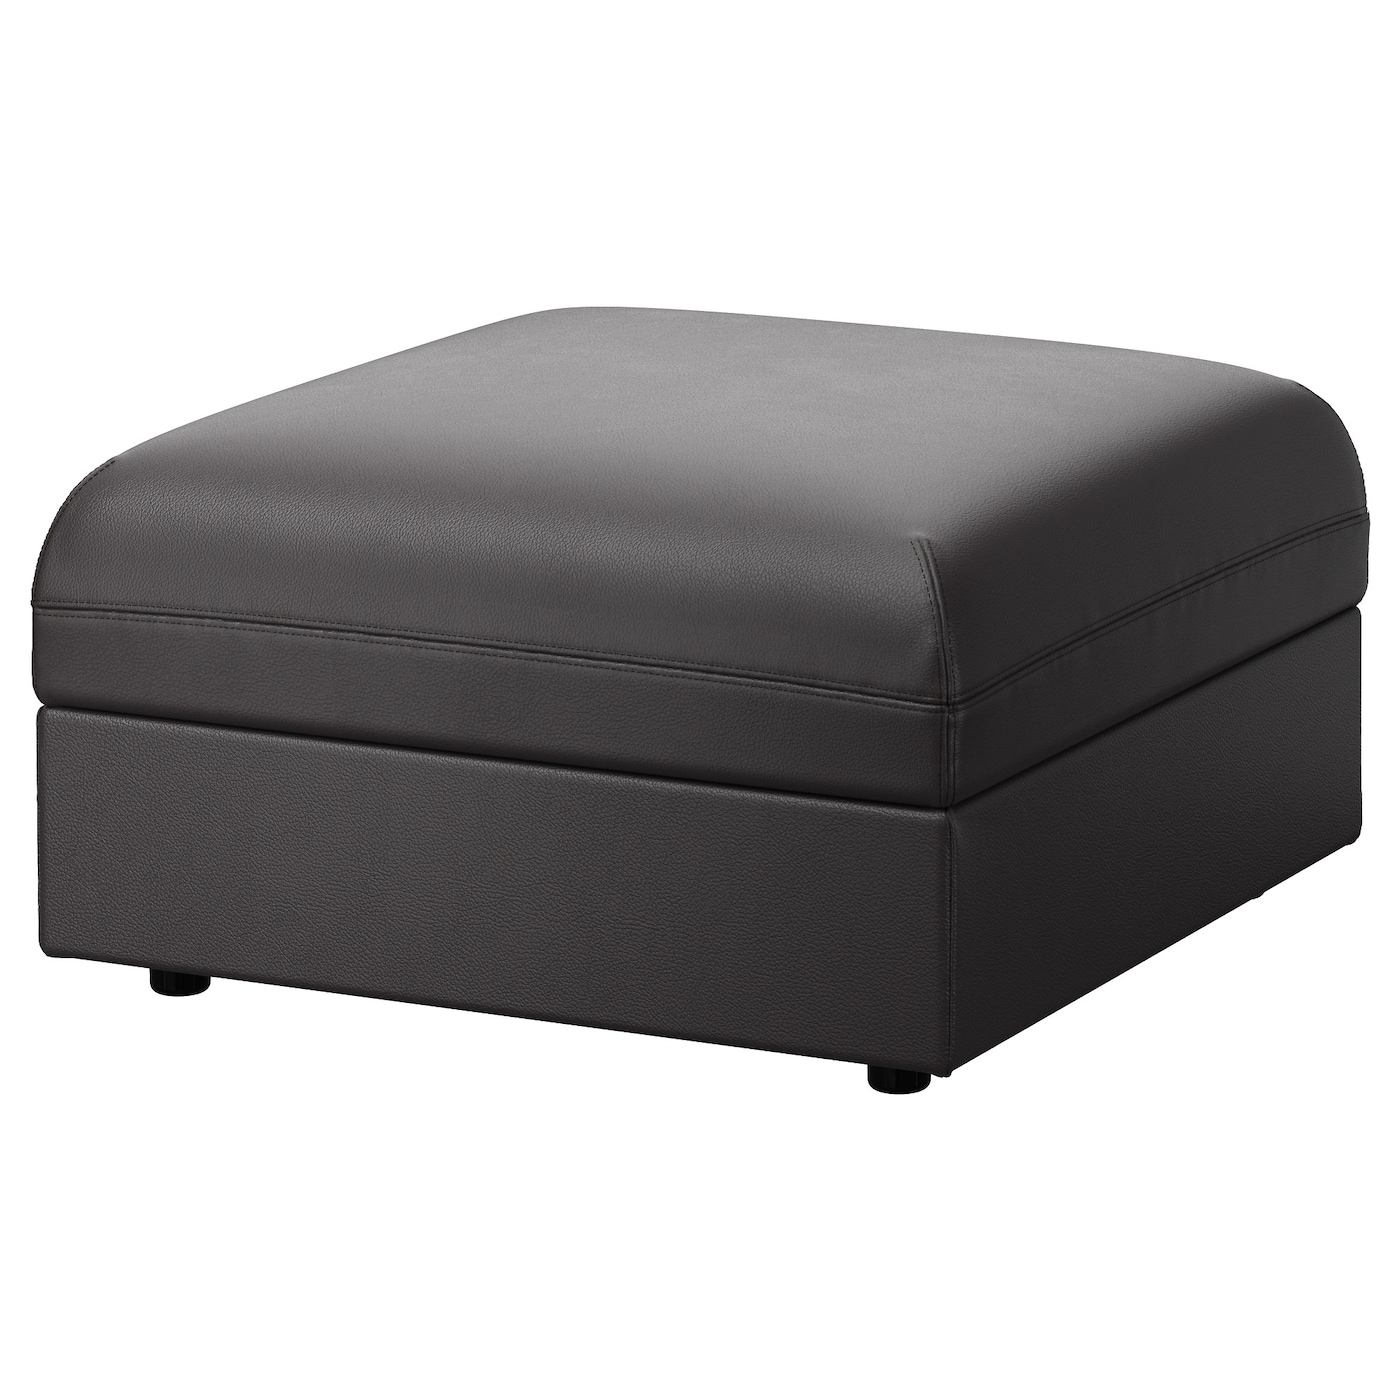 Ikea Vallentuna Seat Module With Storage